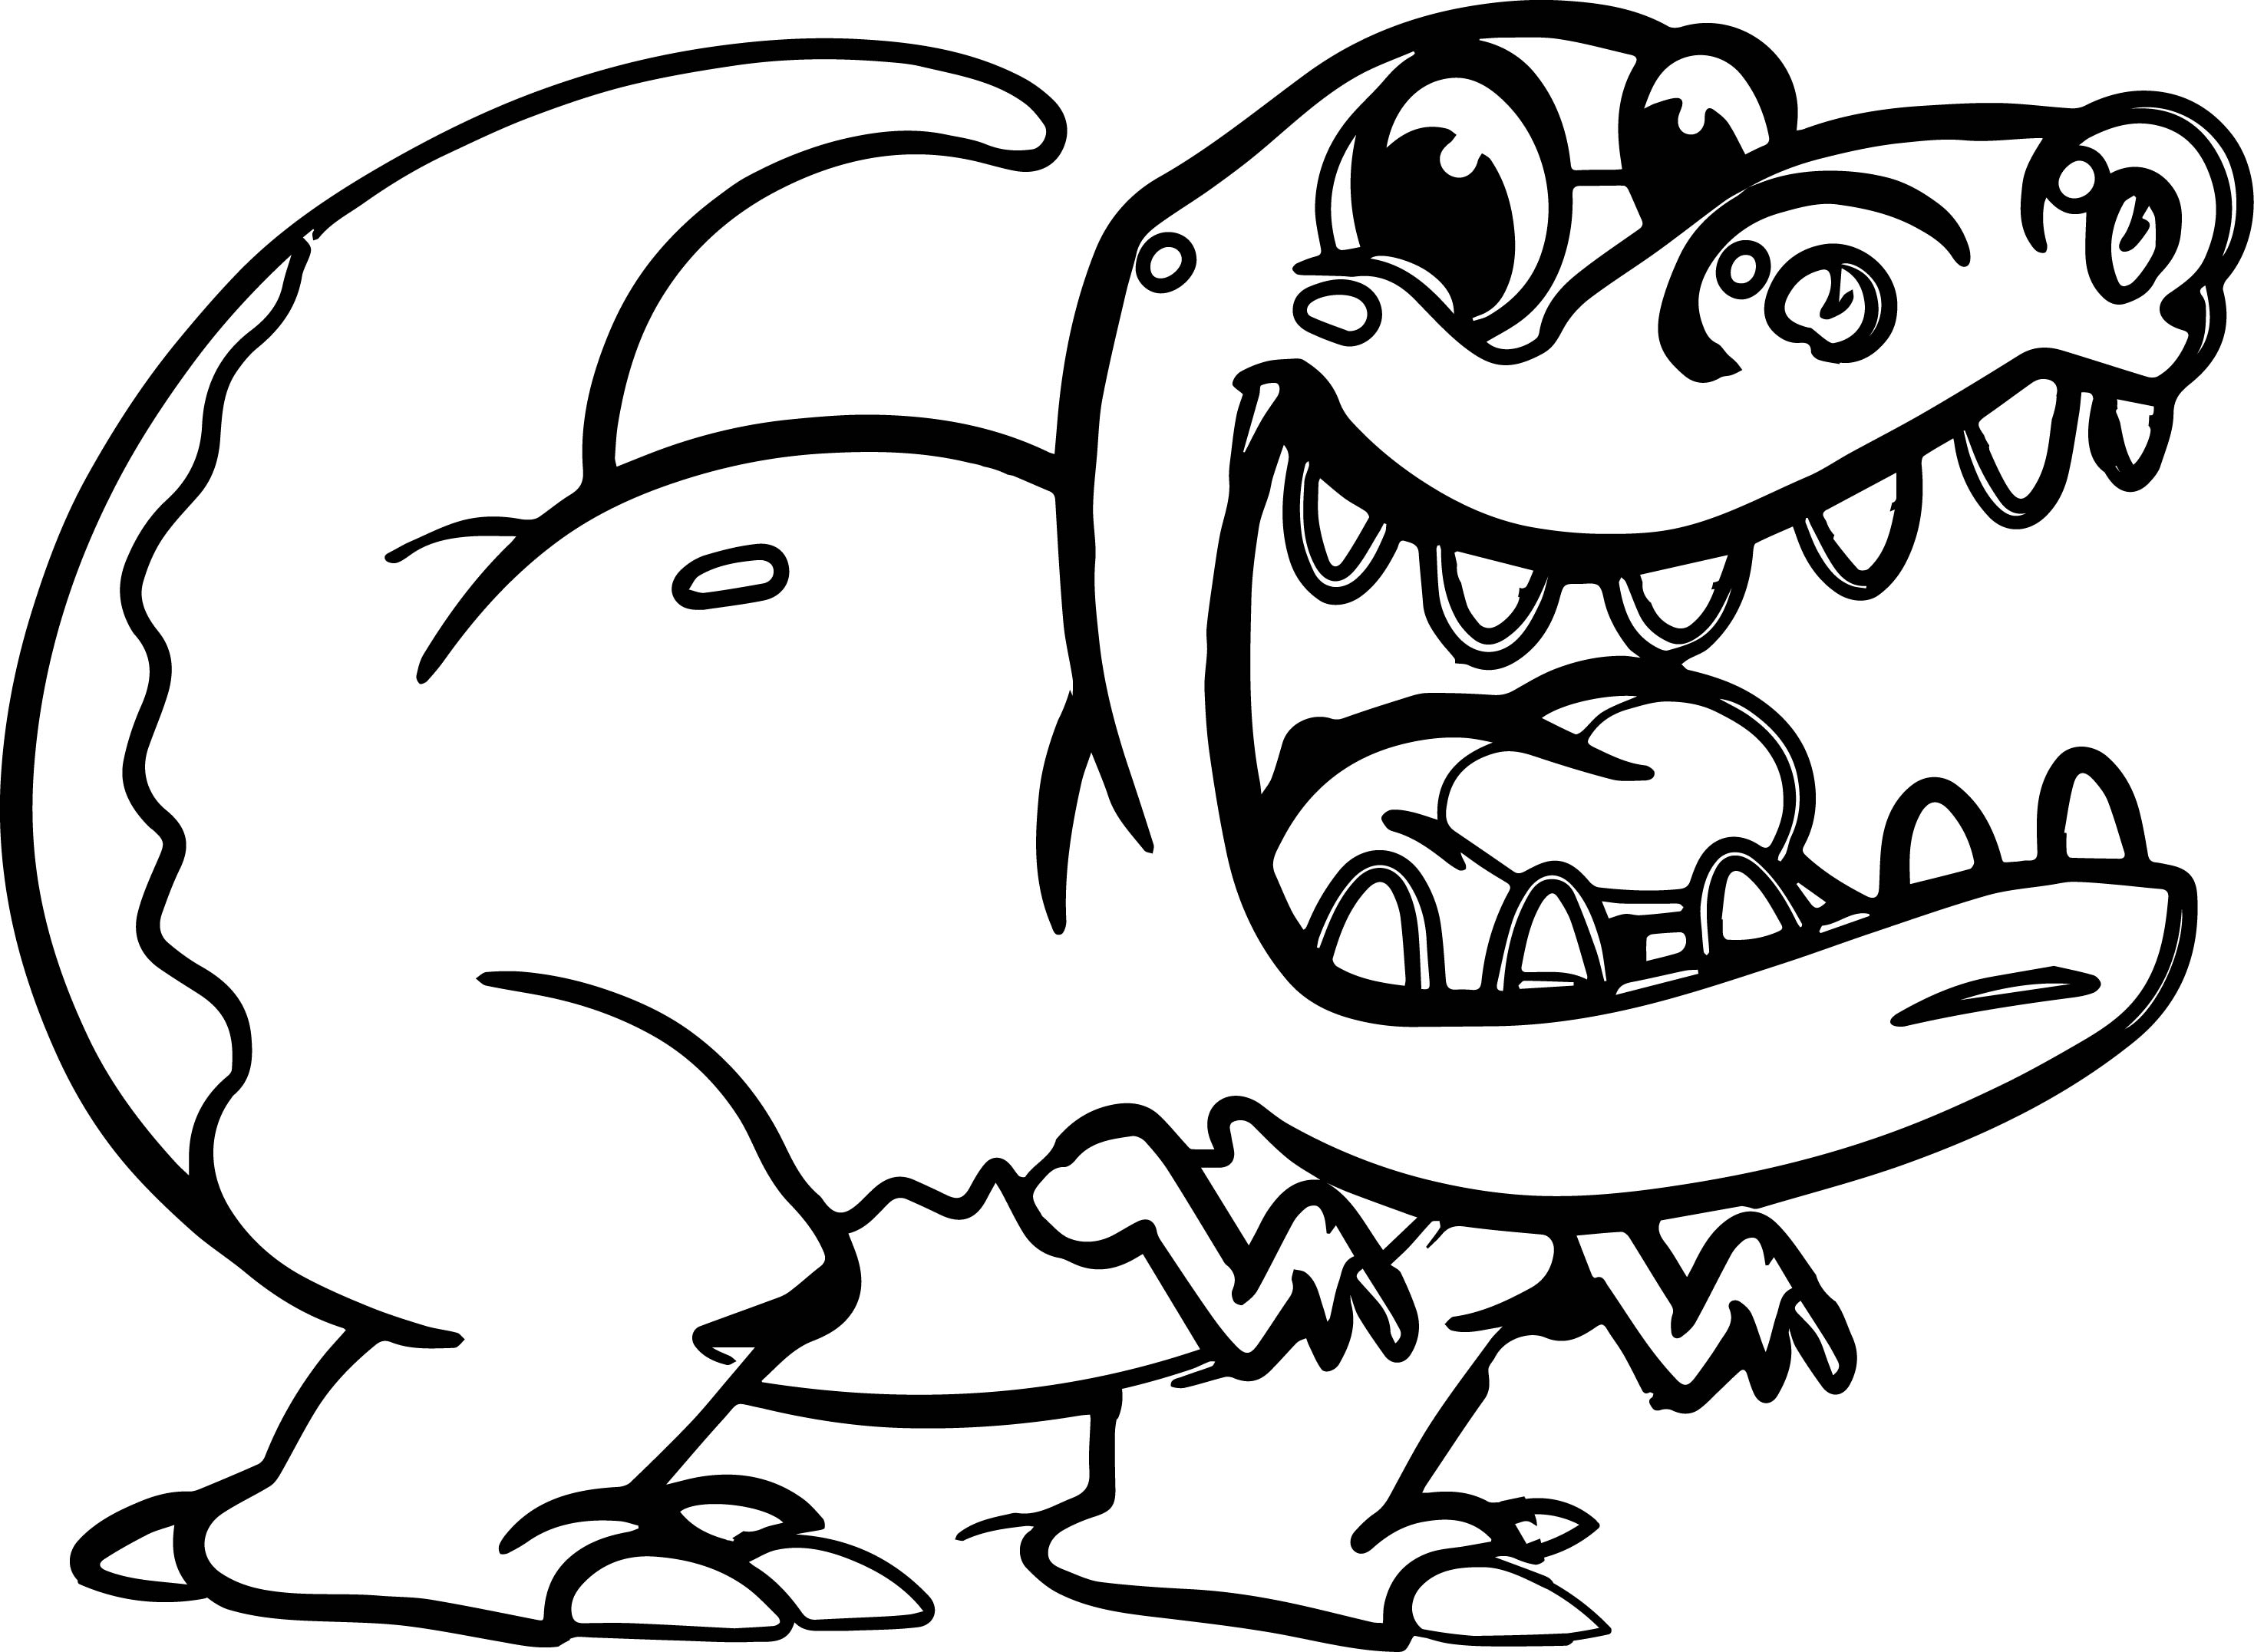 Morphle Cartoon My Cute Pet T Rex Dinosaurs Coloring Page Download Of Dinosaur Clipart Coloring Page Triceratop Pencil and In Color Gallery